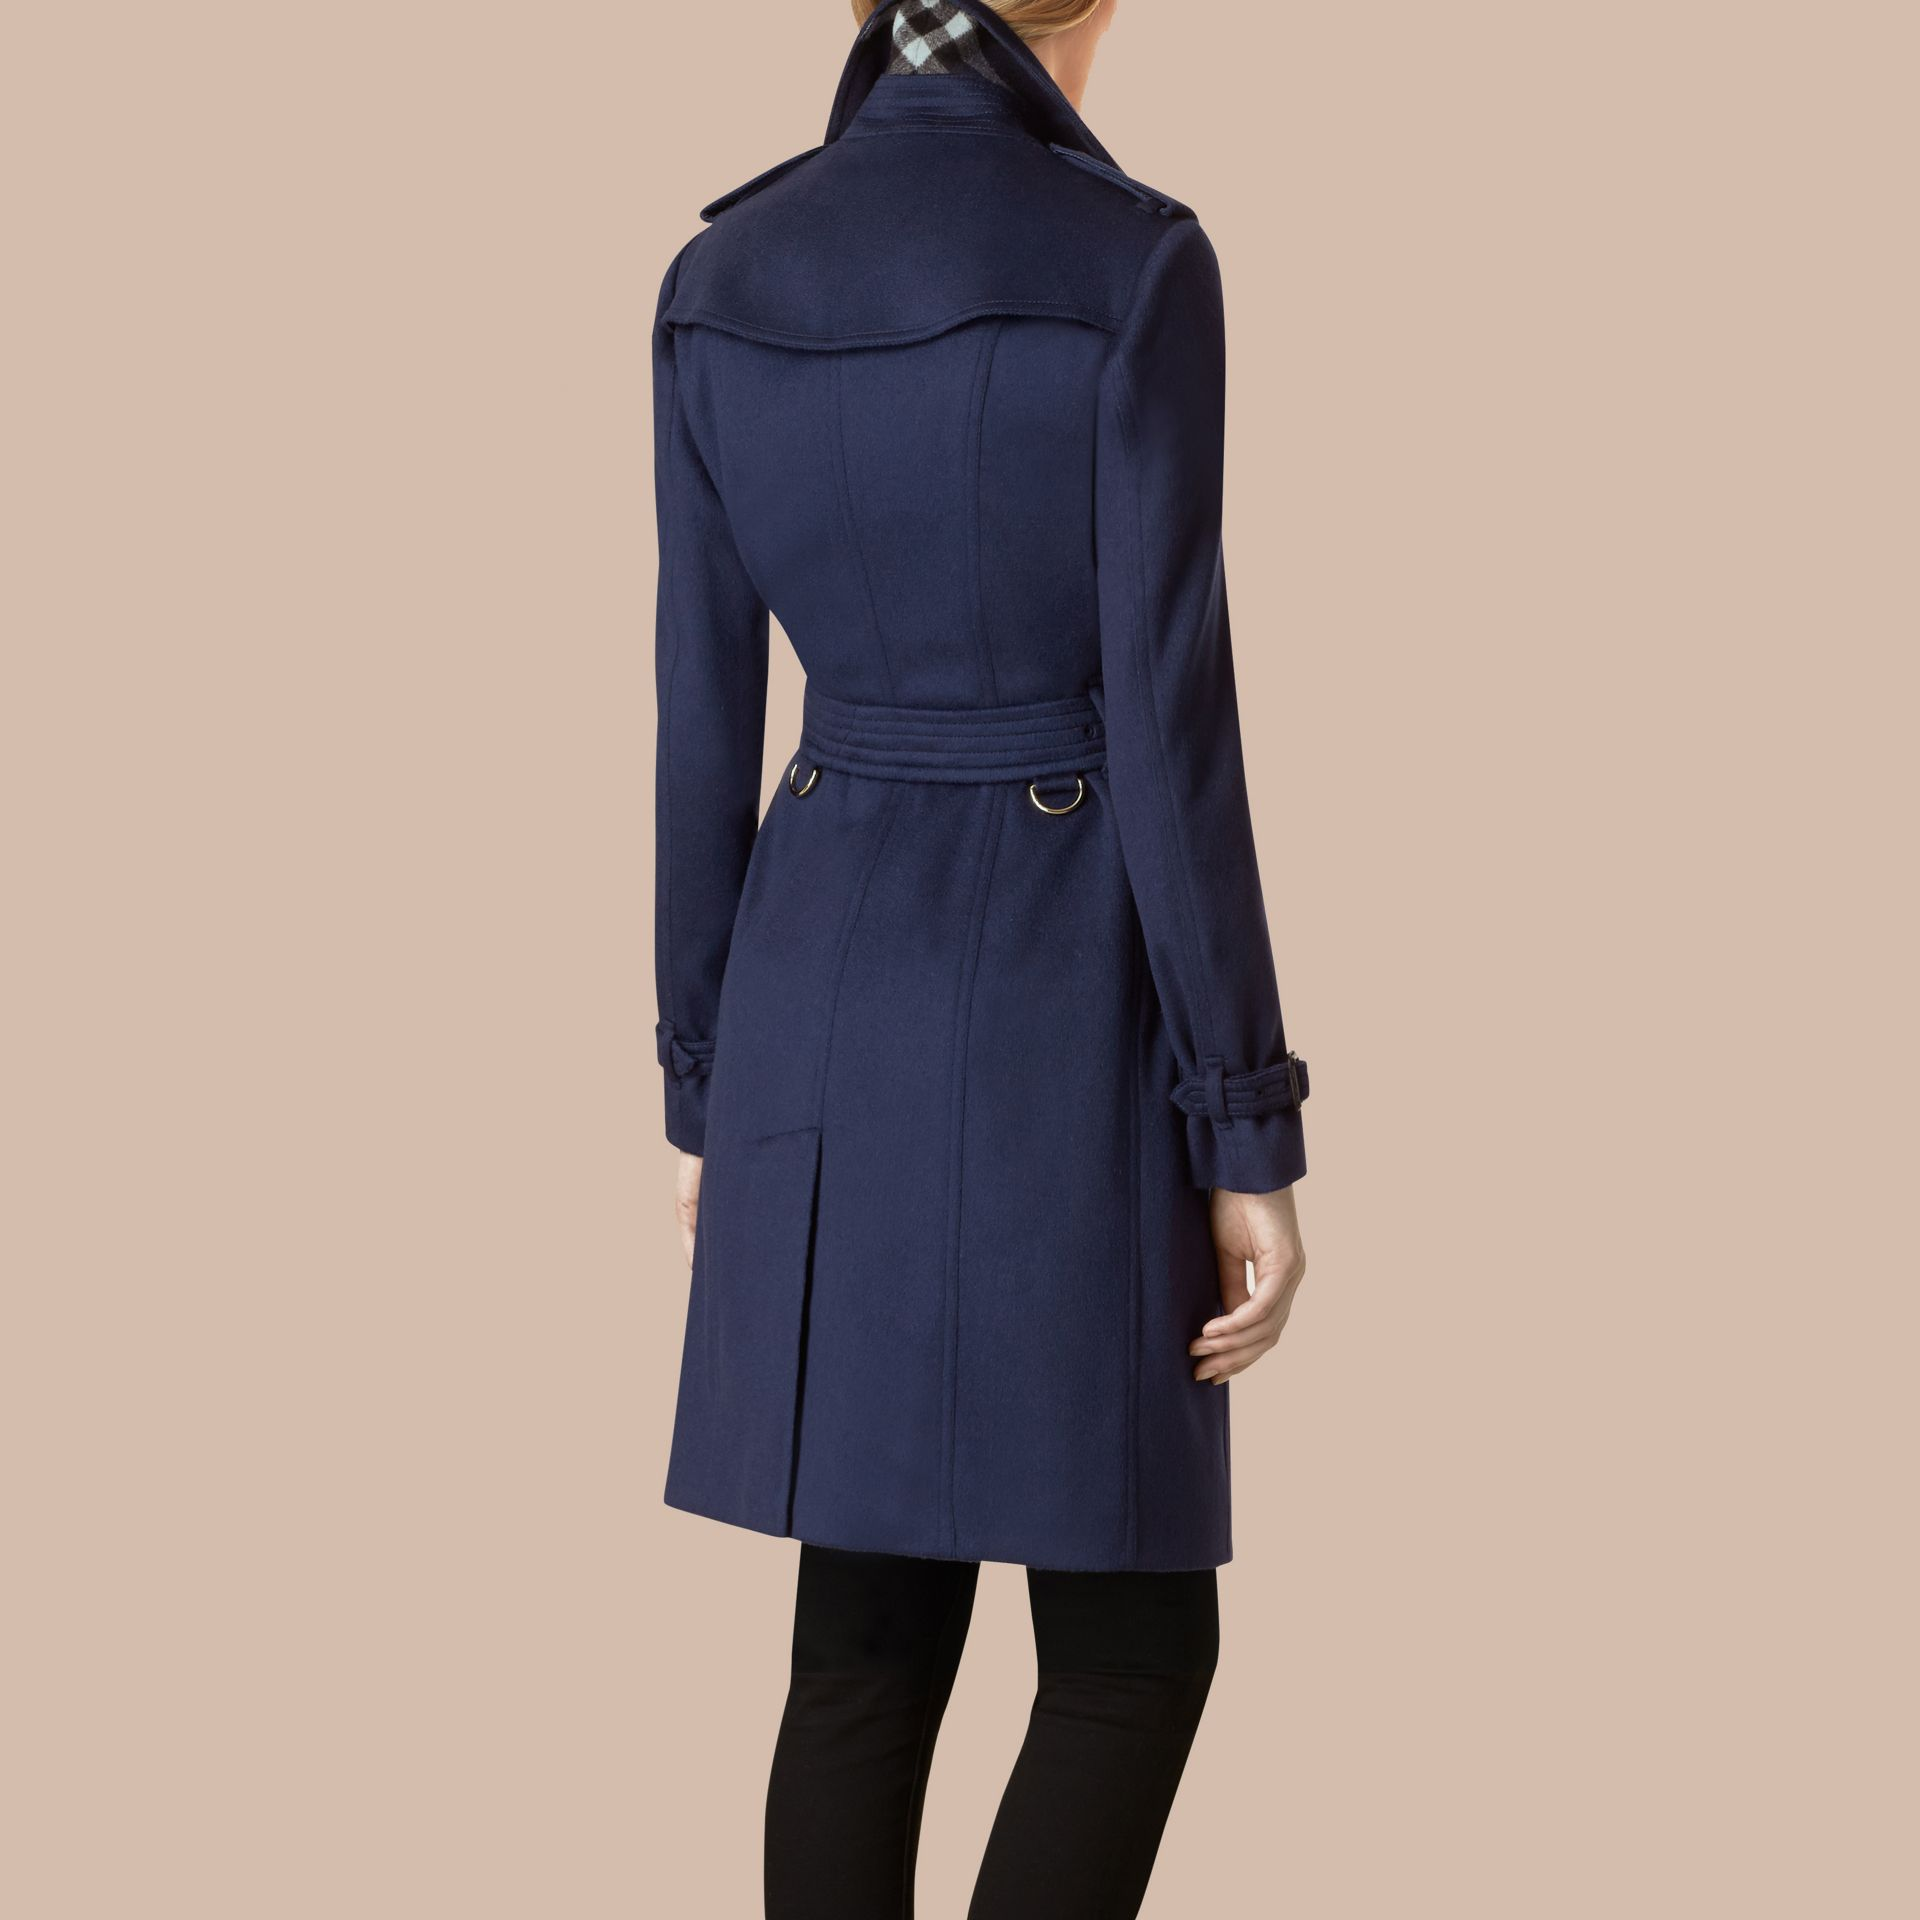 Empire blue Sandringham Fit Cashmere Trench Coat Empire Blue - gallery image 3